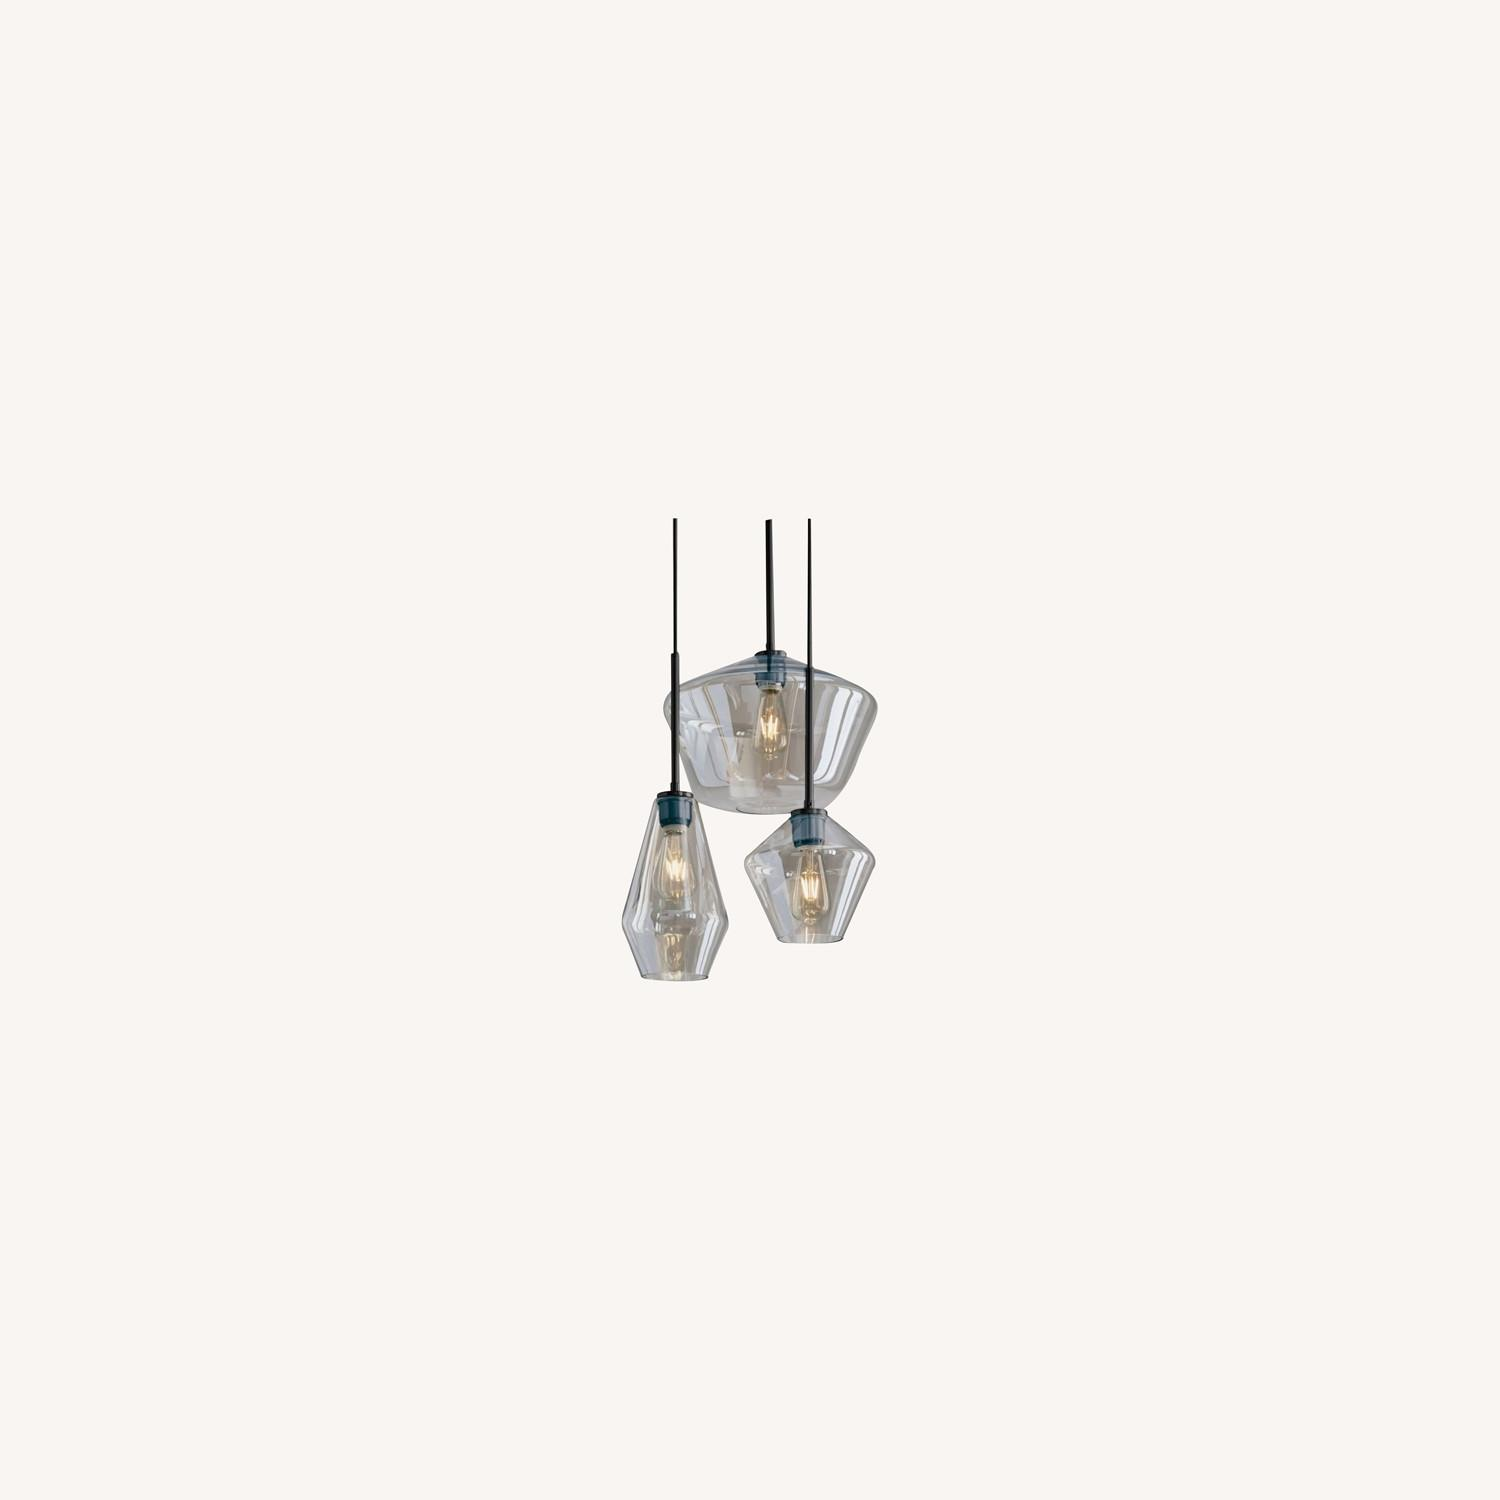 West Elm Sculptural Glass 3-Light Geo Chandelier - image-0